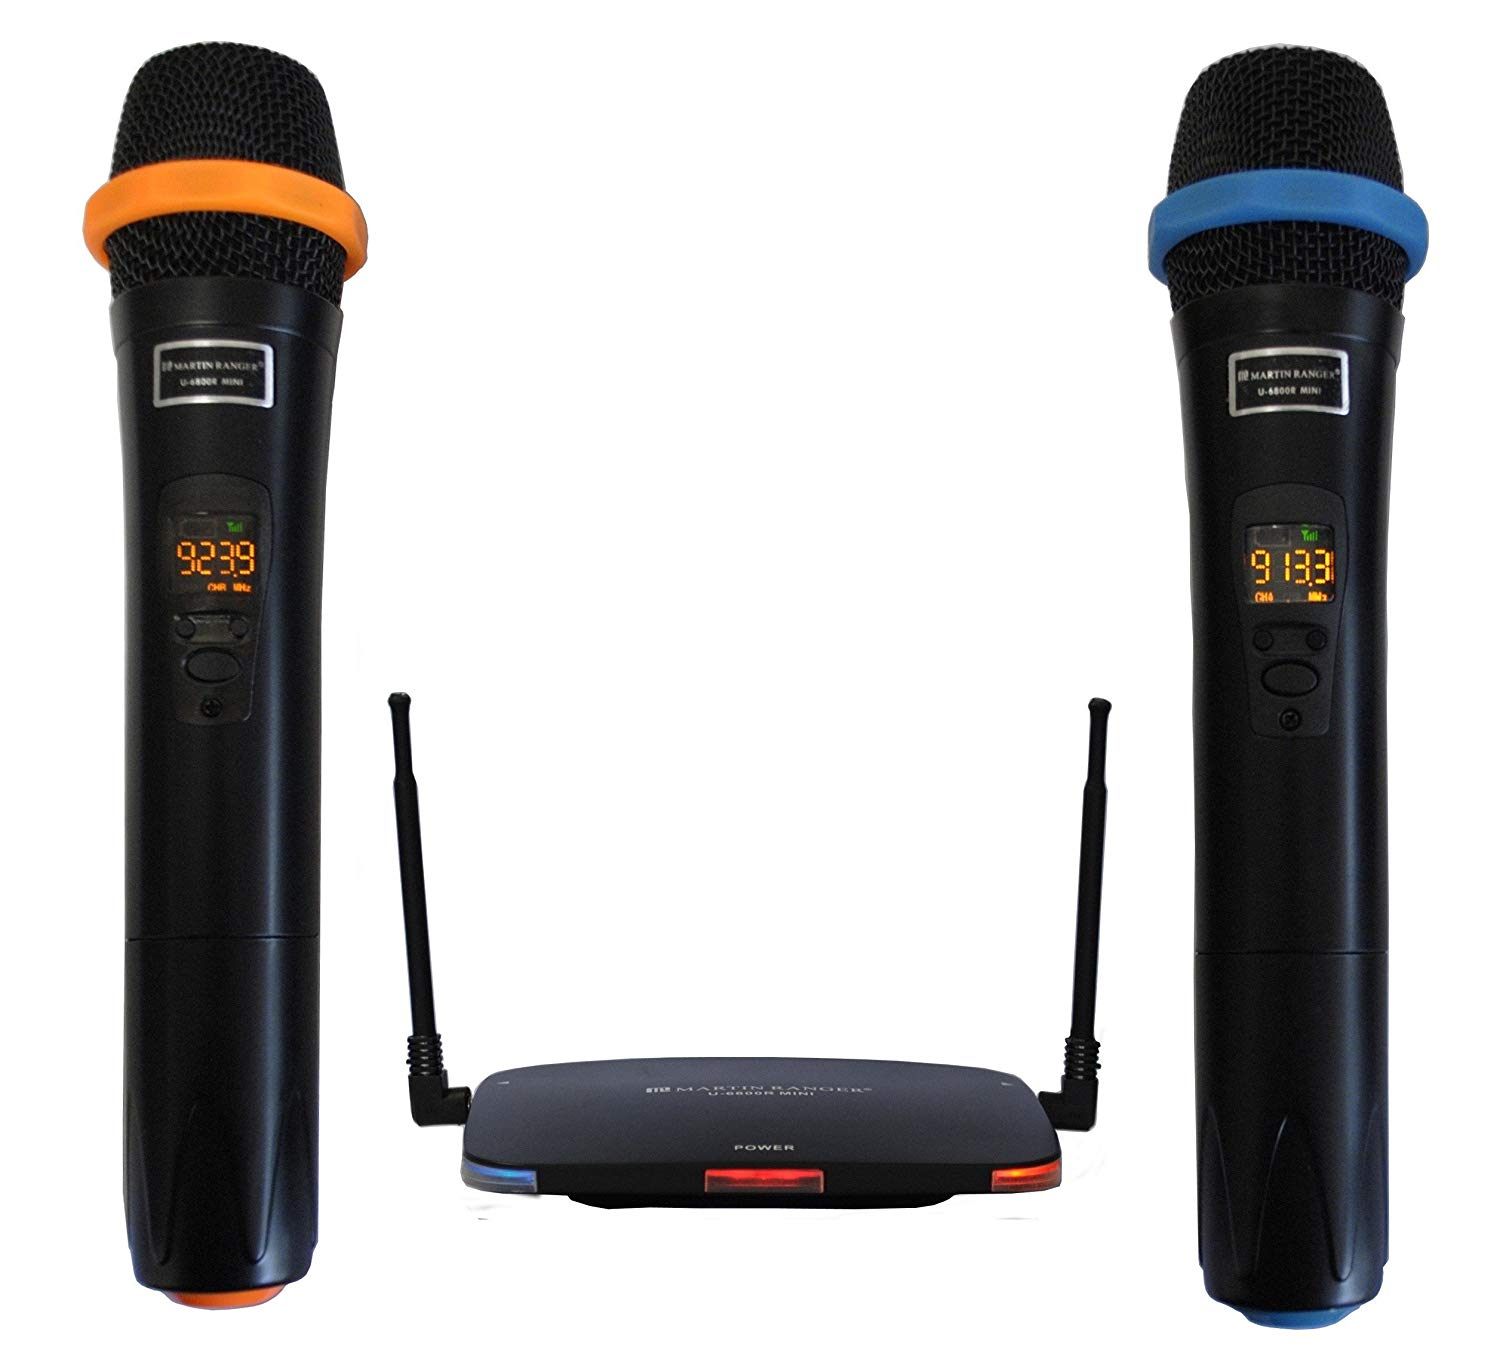 Martin Ranger U6800R-MINI Smallest UHF Wireless Microphone System in the world with 32 Selectable channels and Plug-in USB Rechargeable Lithium Battery